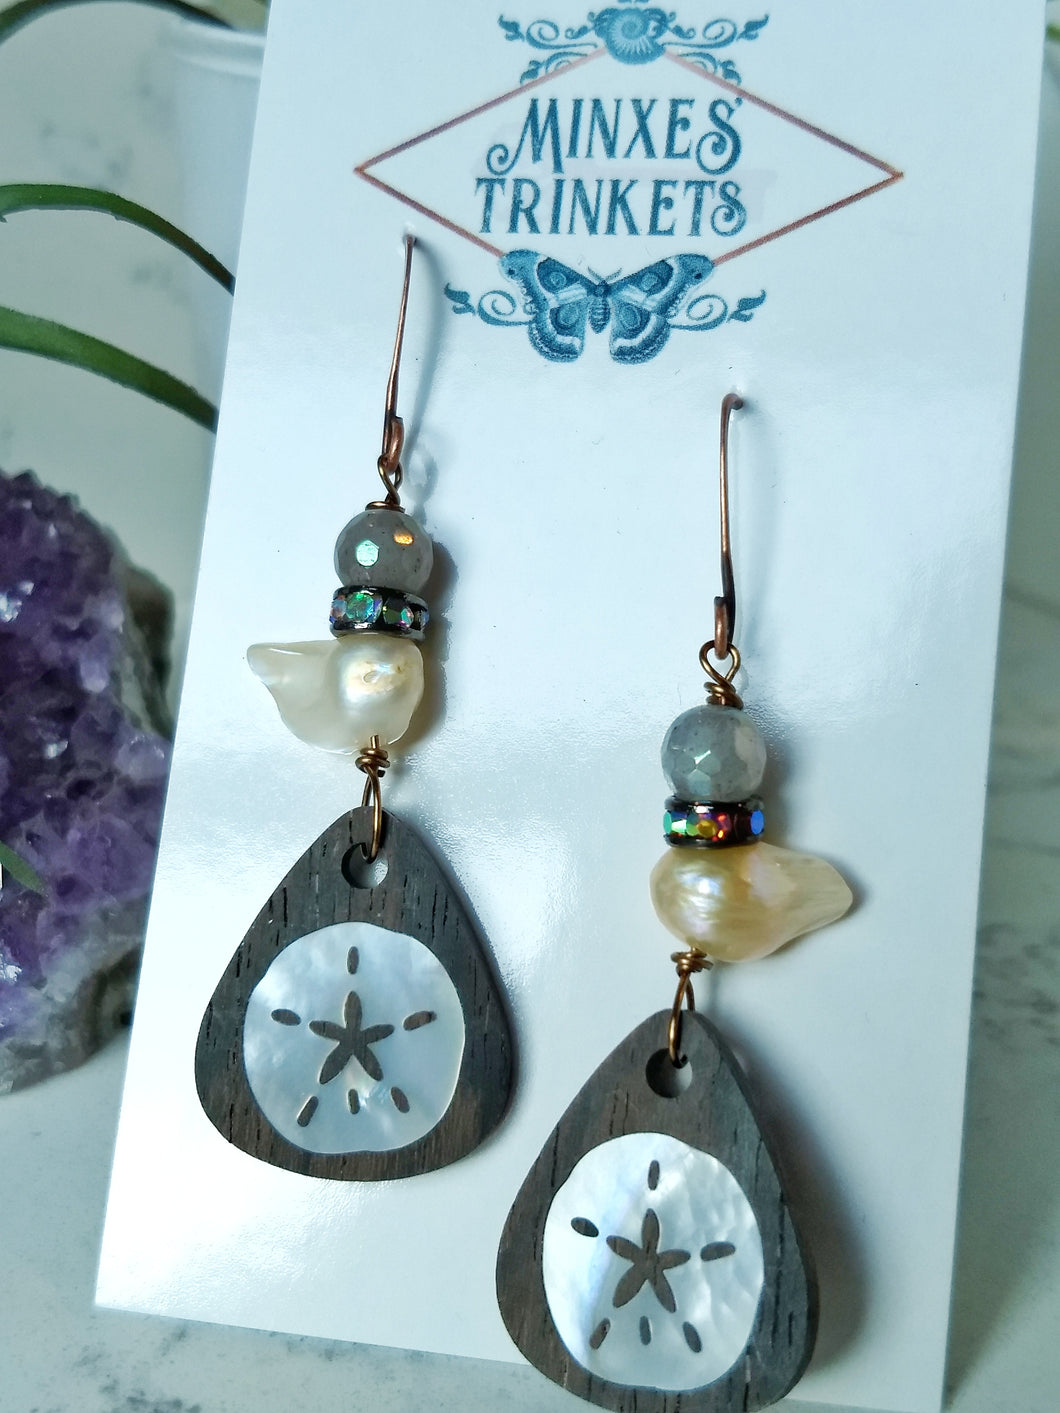 Inlay Earrings - Sand Dollar and Pearl - Minxes' Trinkets